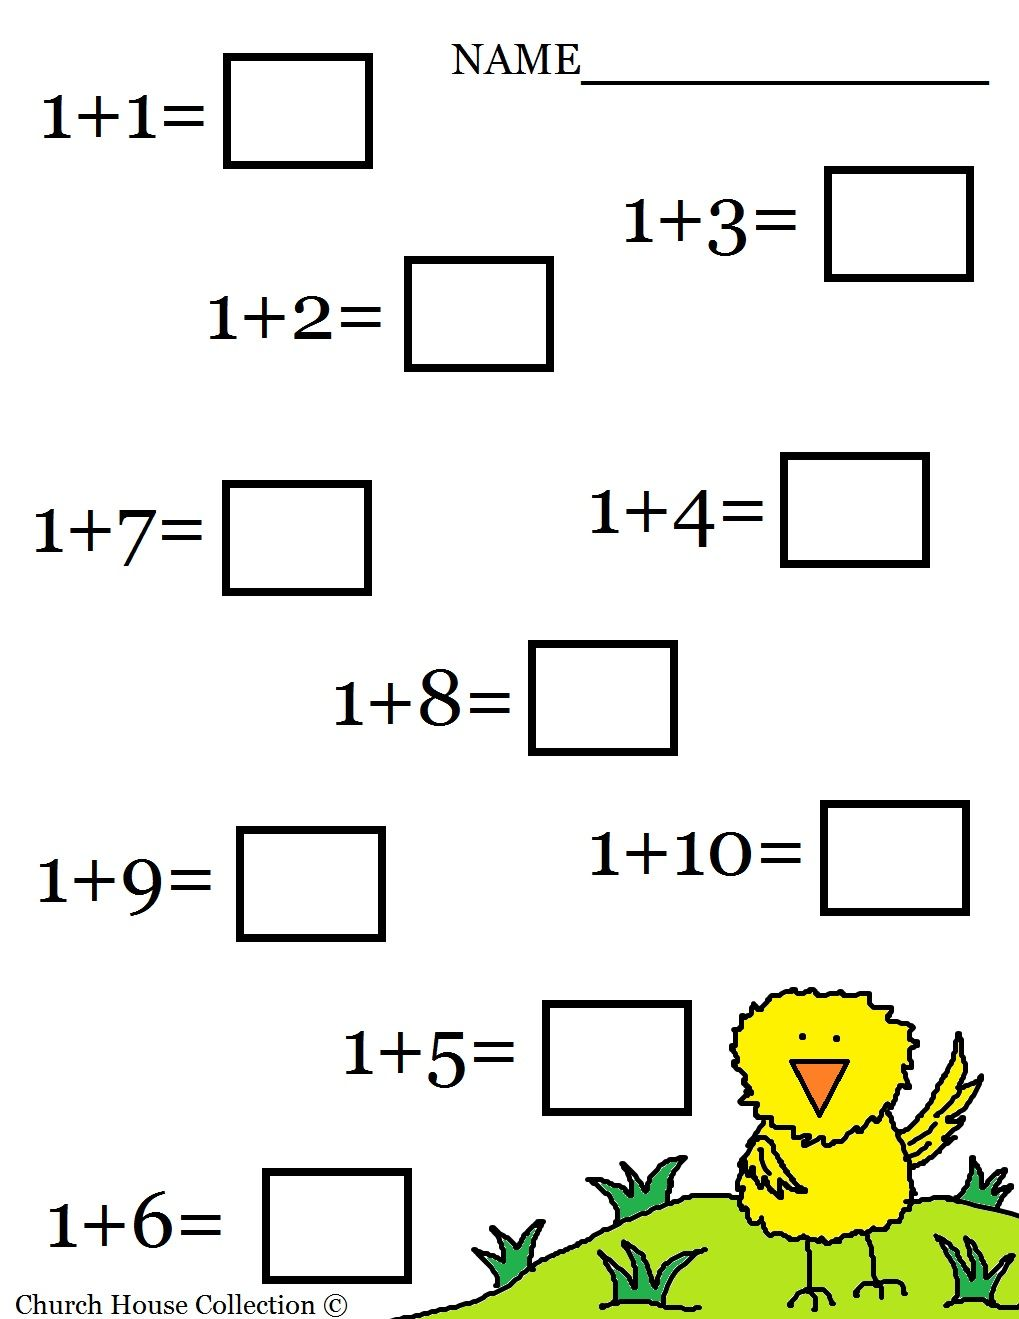 Proatmealus  Outstanding  Images About Worksheets  Math On Pinterest  Math Sheets  With Marvelous  Images About Worksheets  Math On Pinterest  Math Sheets Math Worksheets For Kindergarten And Simple Addition With Awesome Multi Step Proportions Worksheet Also First Grade Multiplication Worksheets In Addition Patterns Of Evolution And Selection Worksheet Answers And Middle School Noun Worksheets As Well As Worksheet Crossword Puzzles Additionally Saxon Phonics Kindergarten Worksheets From Pinterestcom With Proatmealus  Marvelous  Images About Worksheets  Math On Pinterest  Math Sheets  With Awesome  Images About Worksheets  Math On Pinterest  Math Sheets Math Worksheets For Kindergarten And Simple Addition And Outstanding Multi Step Proportions Worksheet Also First Grade Multiplication Worksheets In Addition Patterns Of Evolution And Selection Worksheet Answers From Pinterestcom